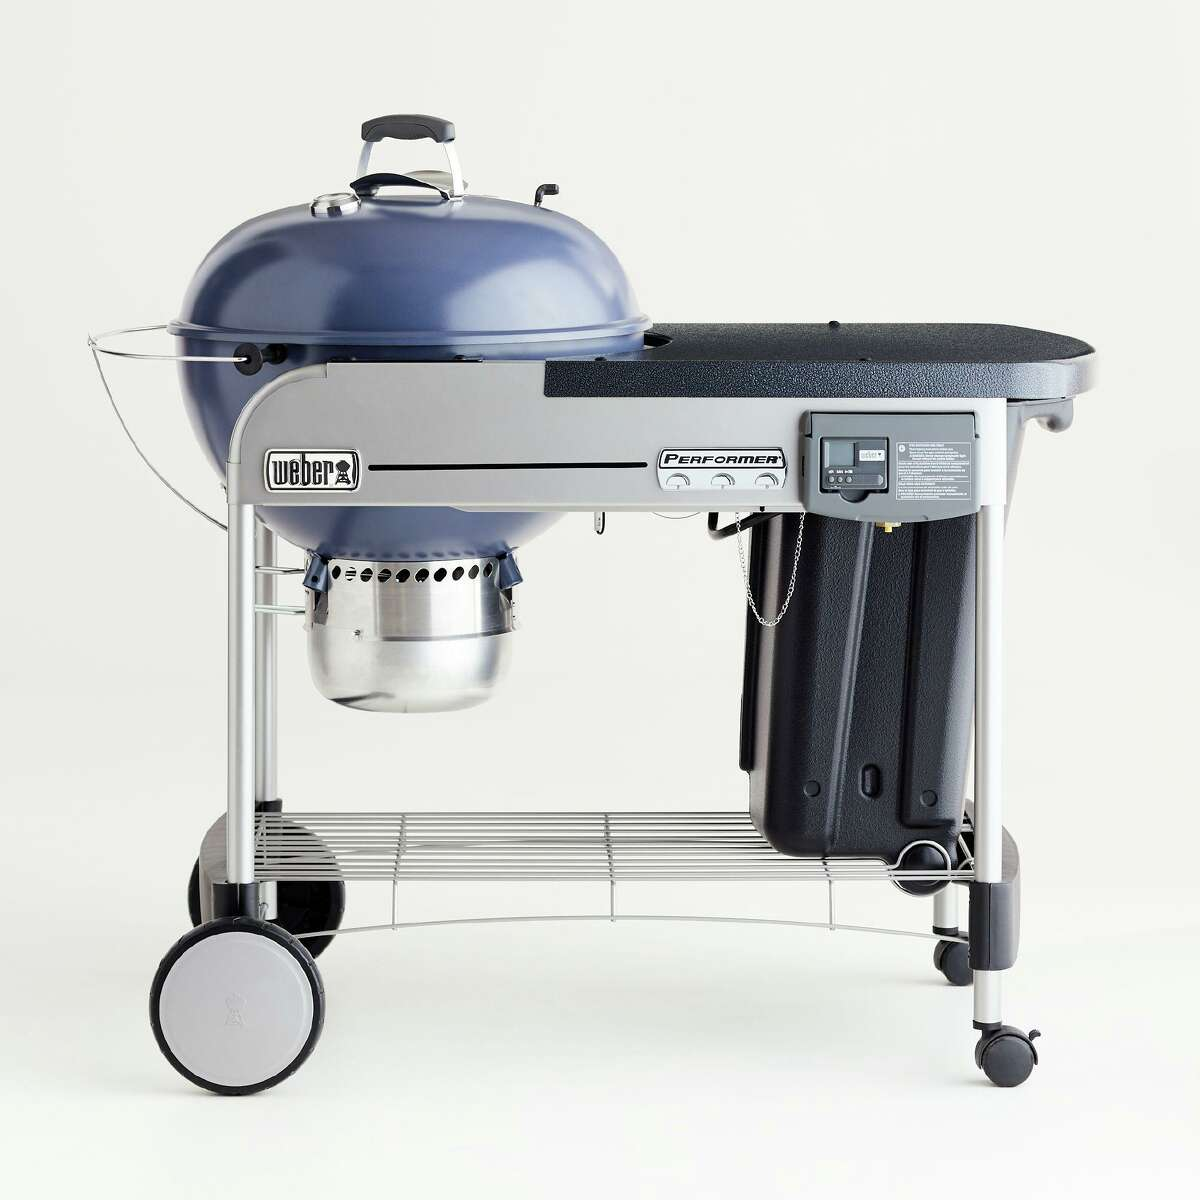 Weber Slate Blue Performer Deluxe Charcoal Grill, is the trusted grill-maker's elevated version of classic two-wheel kettle. It includes electronic gas ignition, cook timer and built-in thermometer, and one-touch cleaning system; $459 at Crate & Barrel stores and crateandbarrel.com.